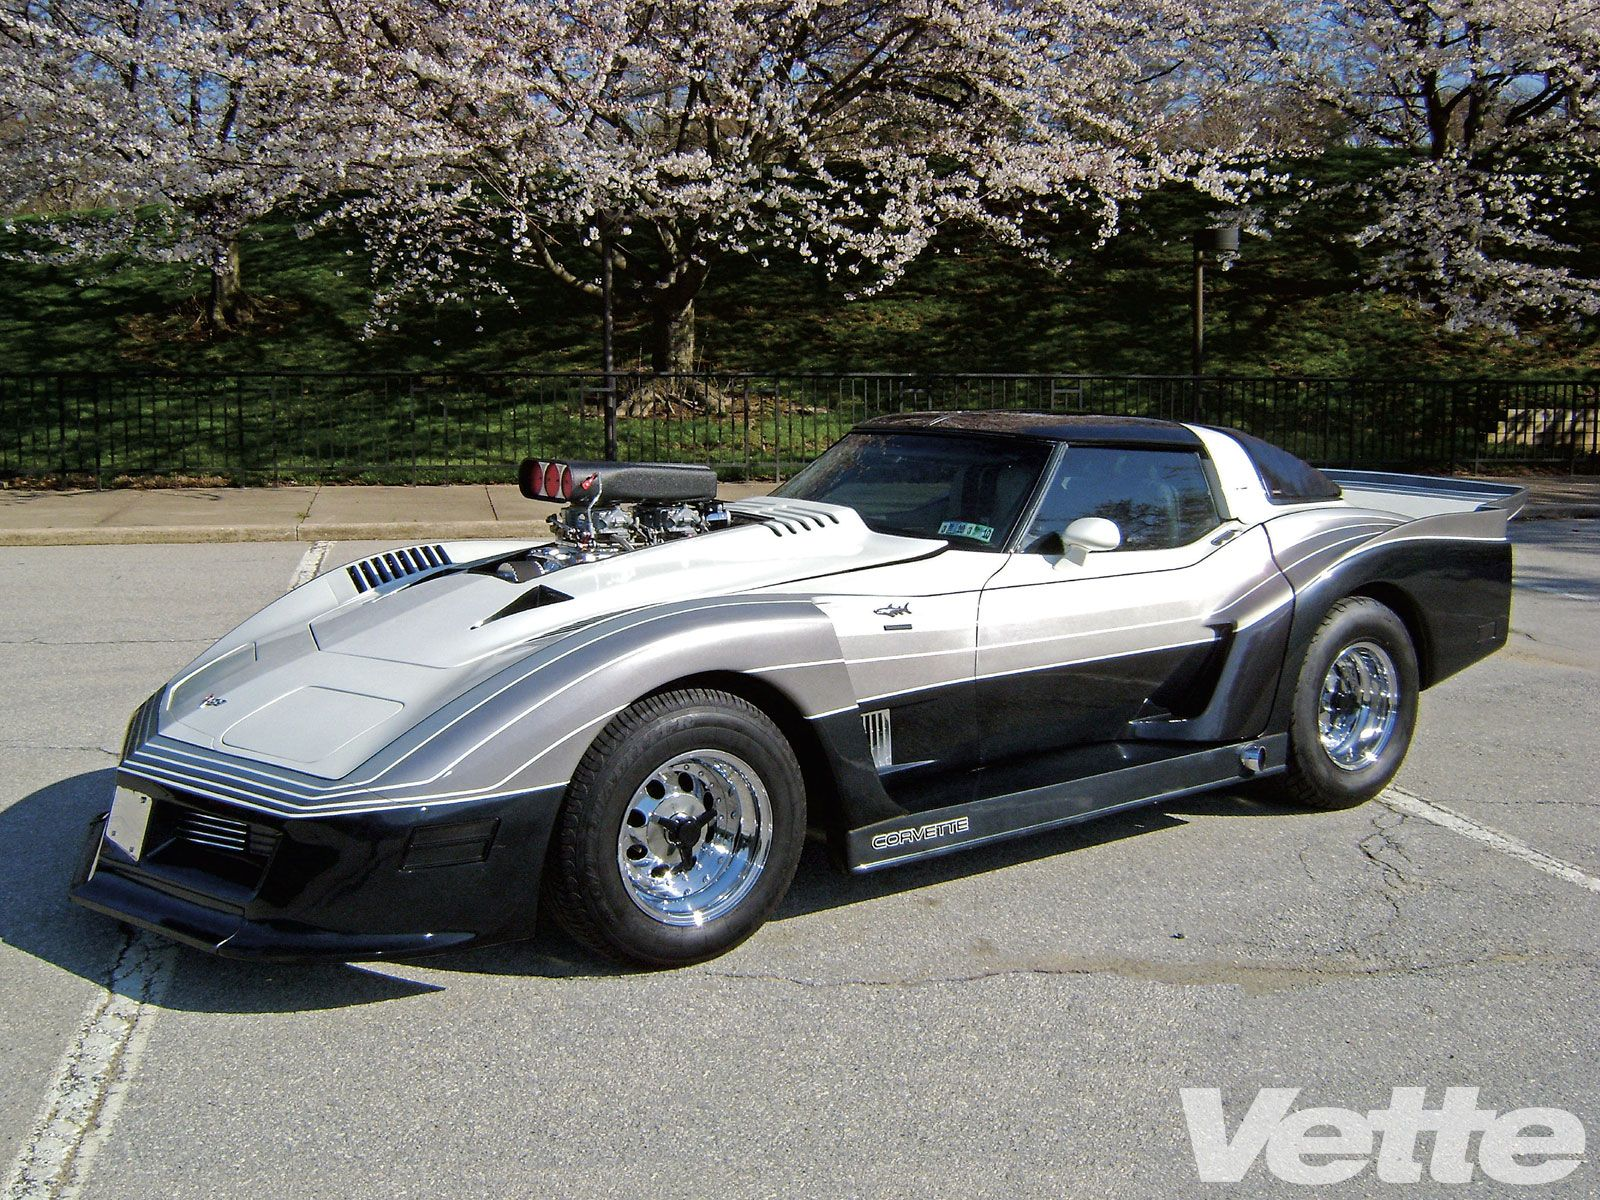 1976 greenwood corvette c3 daytona muscle cars pinterest corvettes corvette c3 and. Black Bedroom Furniture Sets. Home Design Ideas